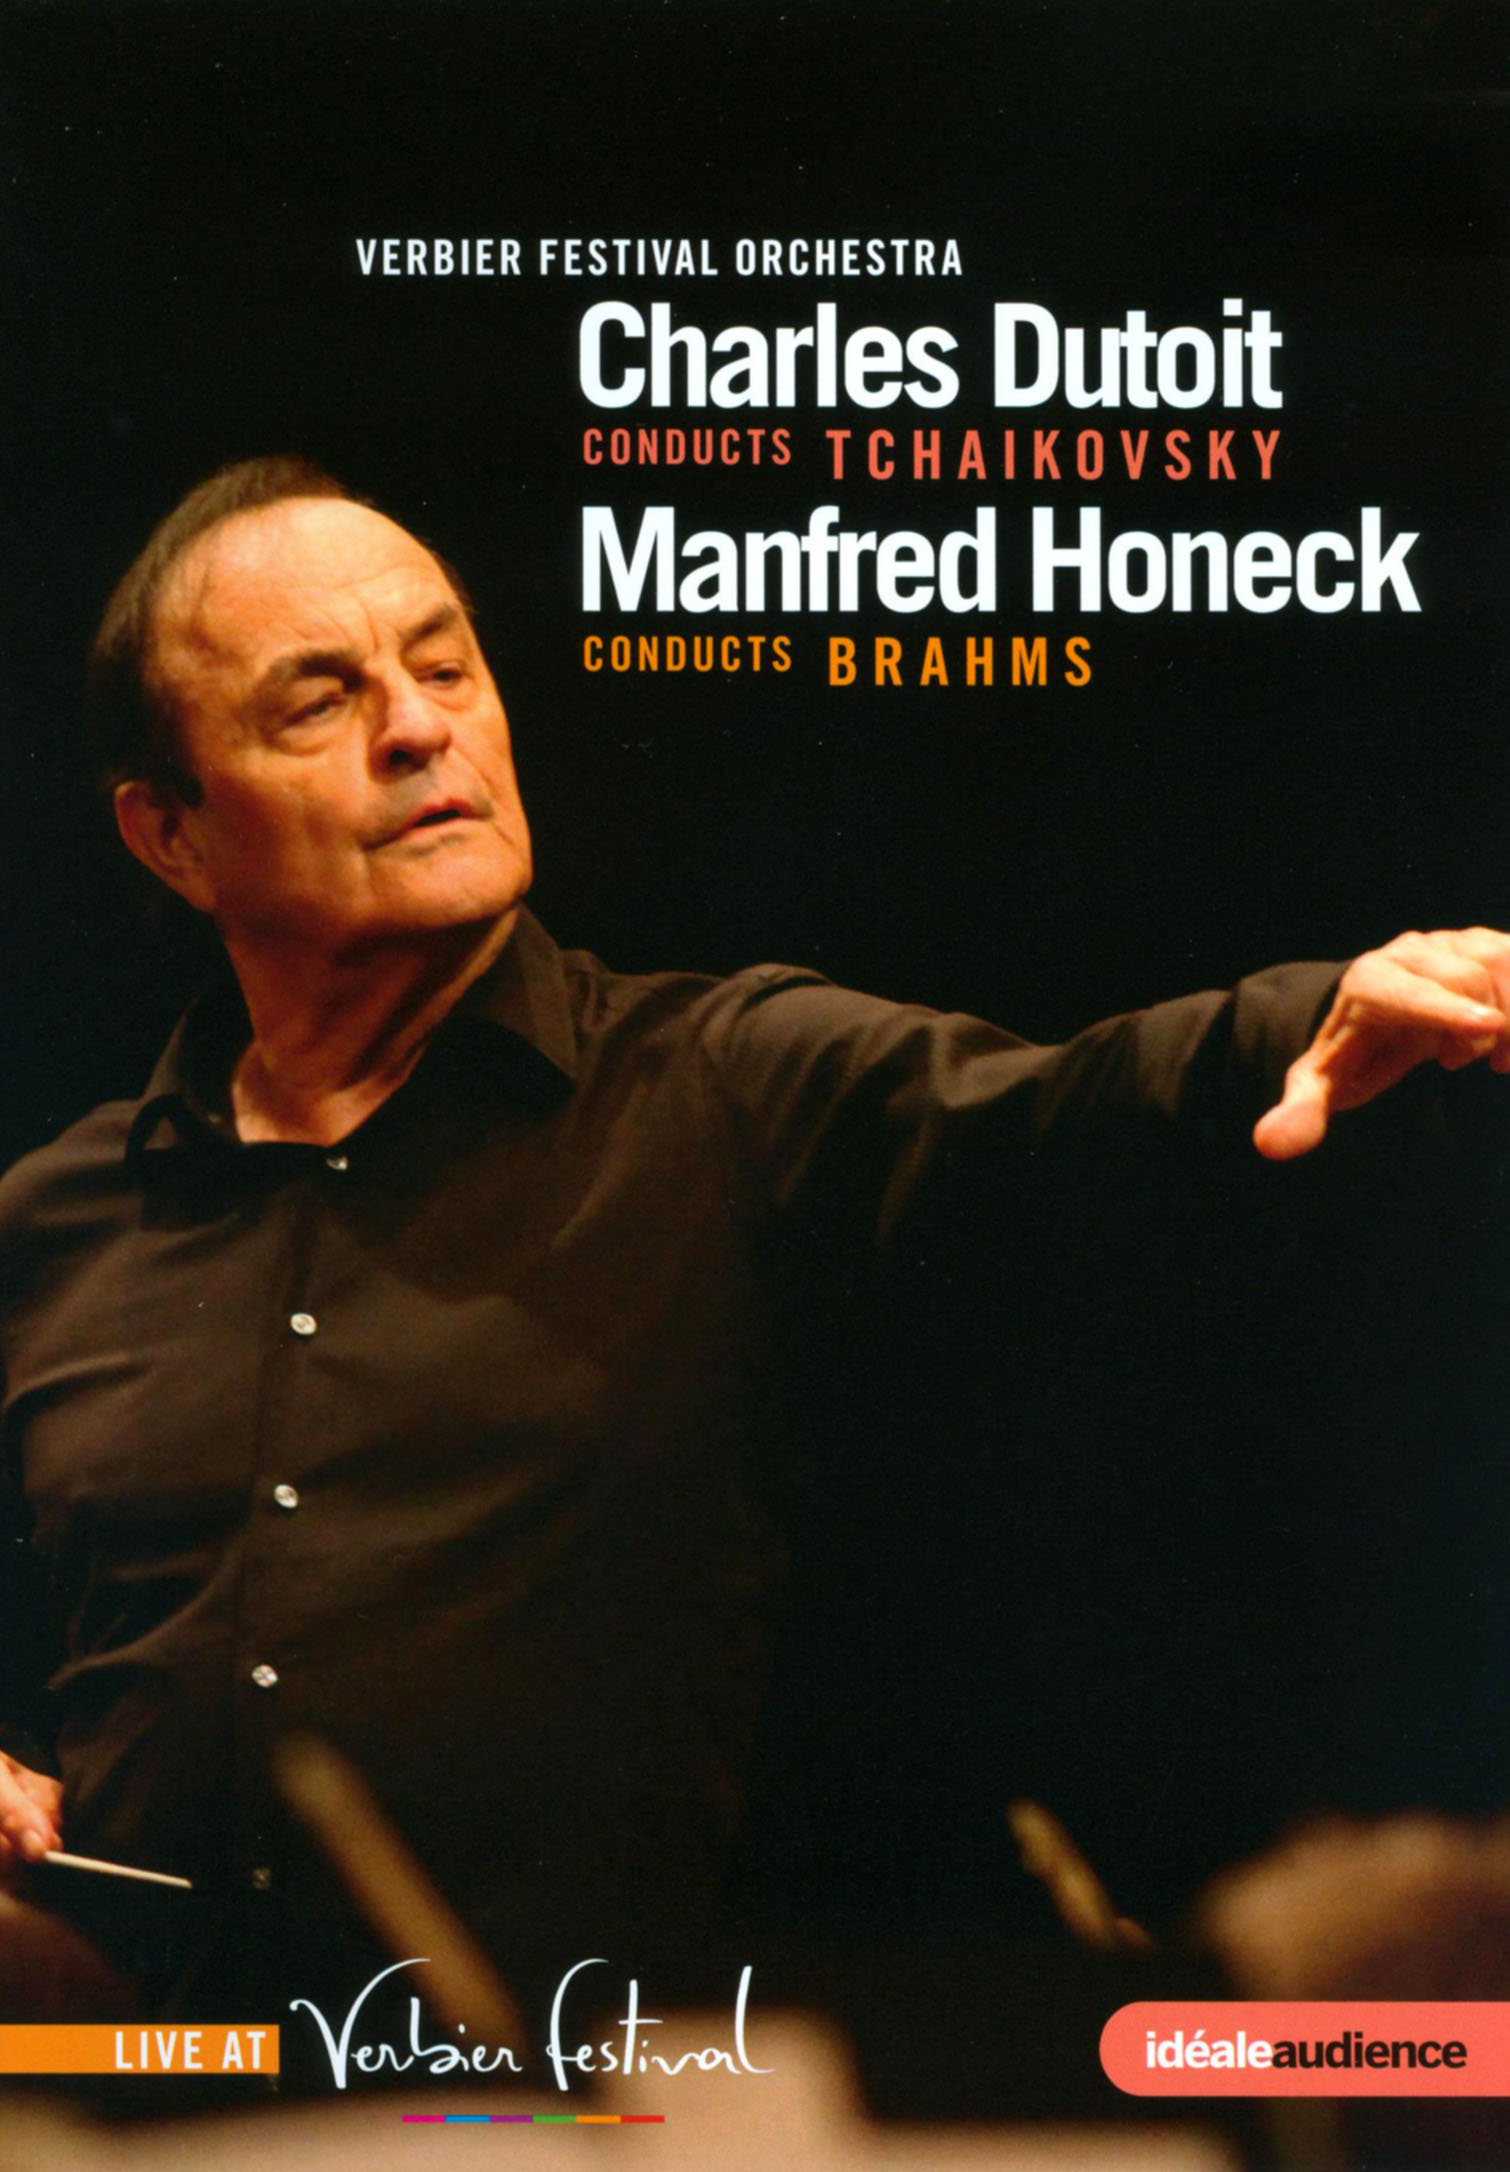 Verbier Festival Orchestra: Charles Dutoit Conducts Tchaikovsky/Manfred Honeck Conducts Brahms